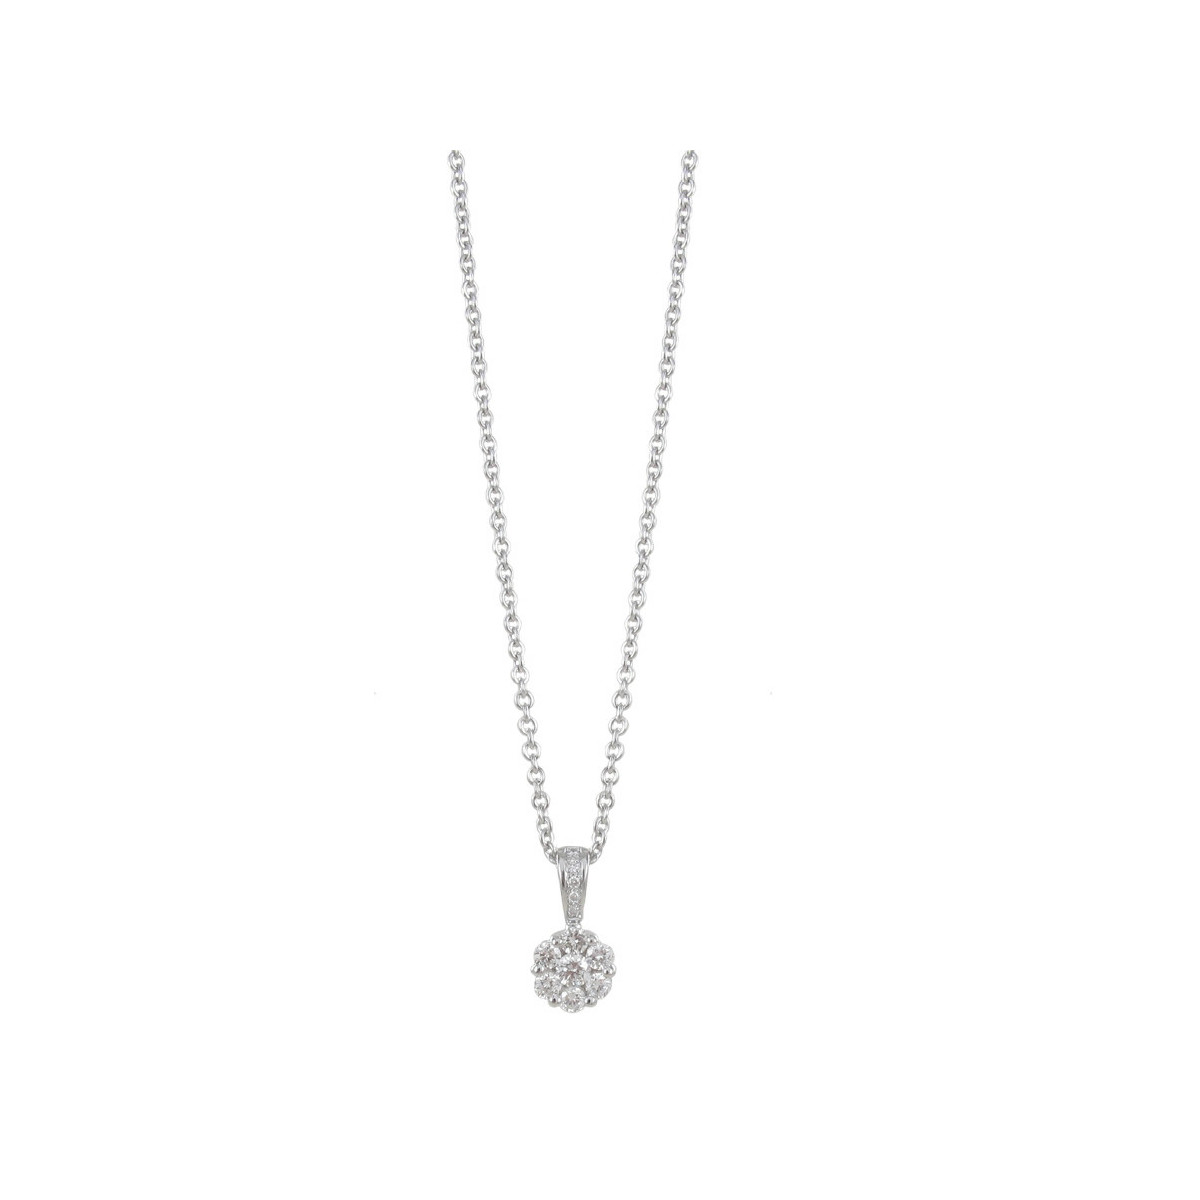 NECKLACE WHITE GOLD AND 7 DIAMONDS